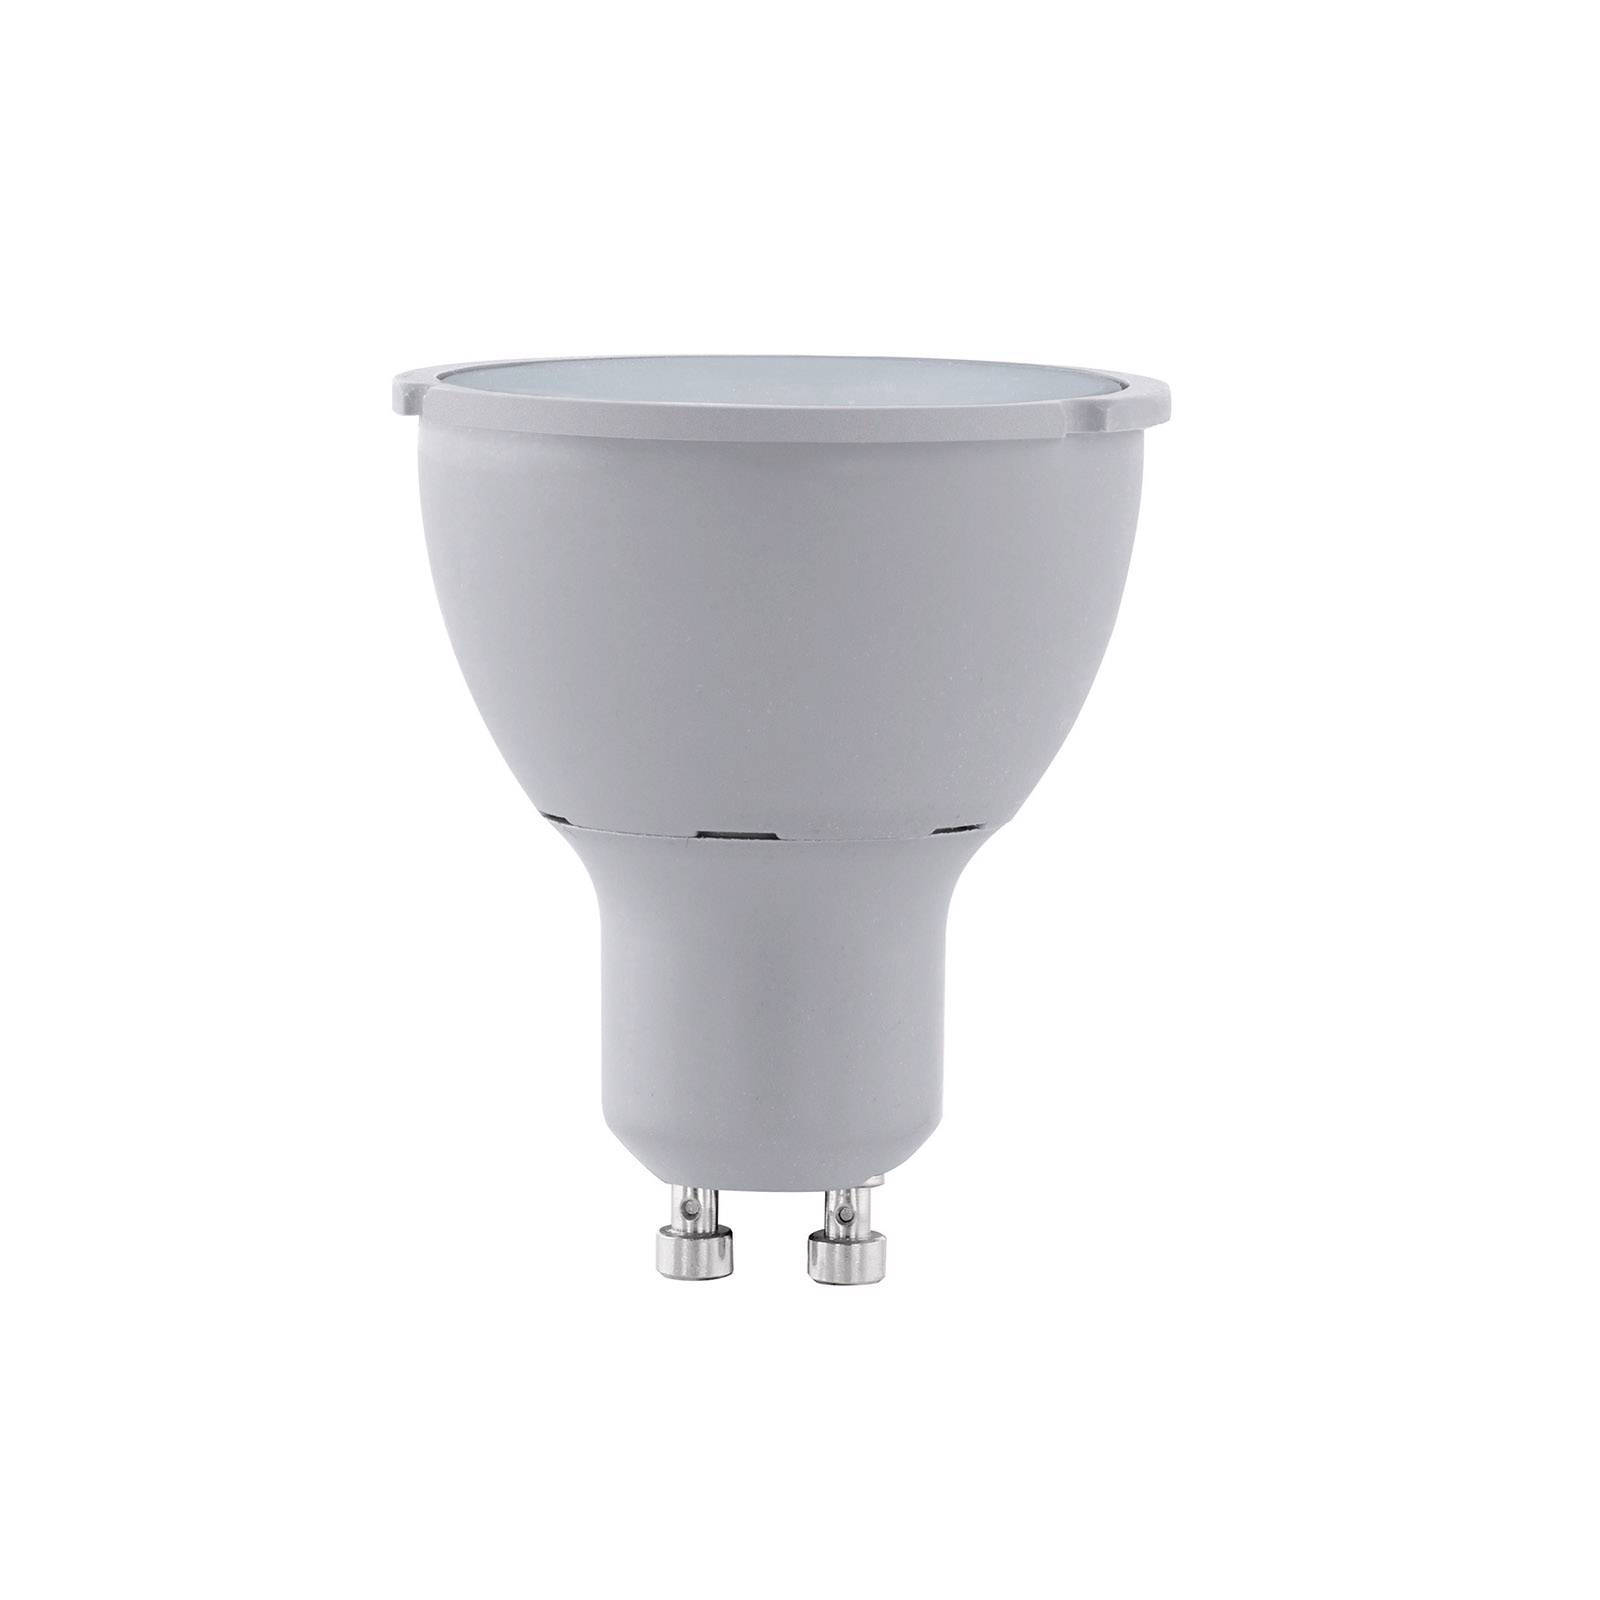 Led Gu10 5w Eglo Connect Connect Led Lichtbron Gu10 5w Wehkamp